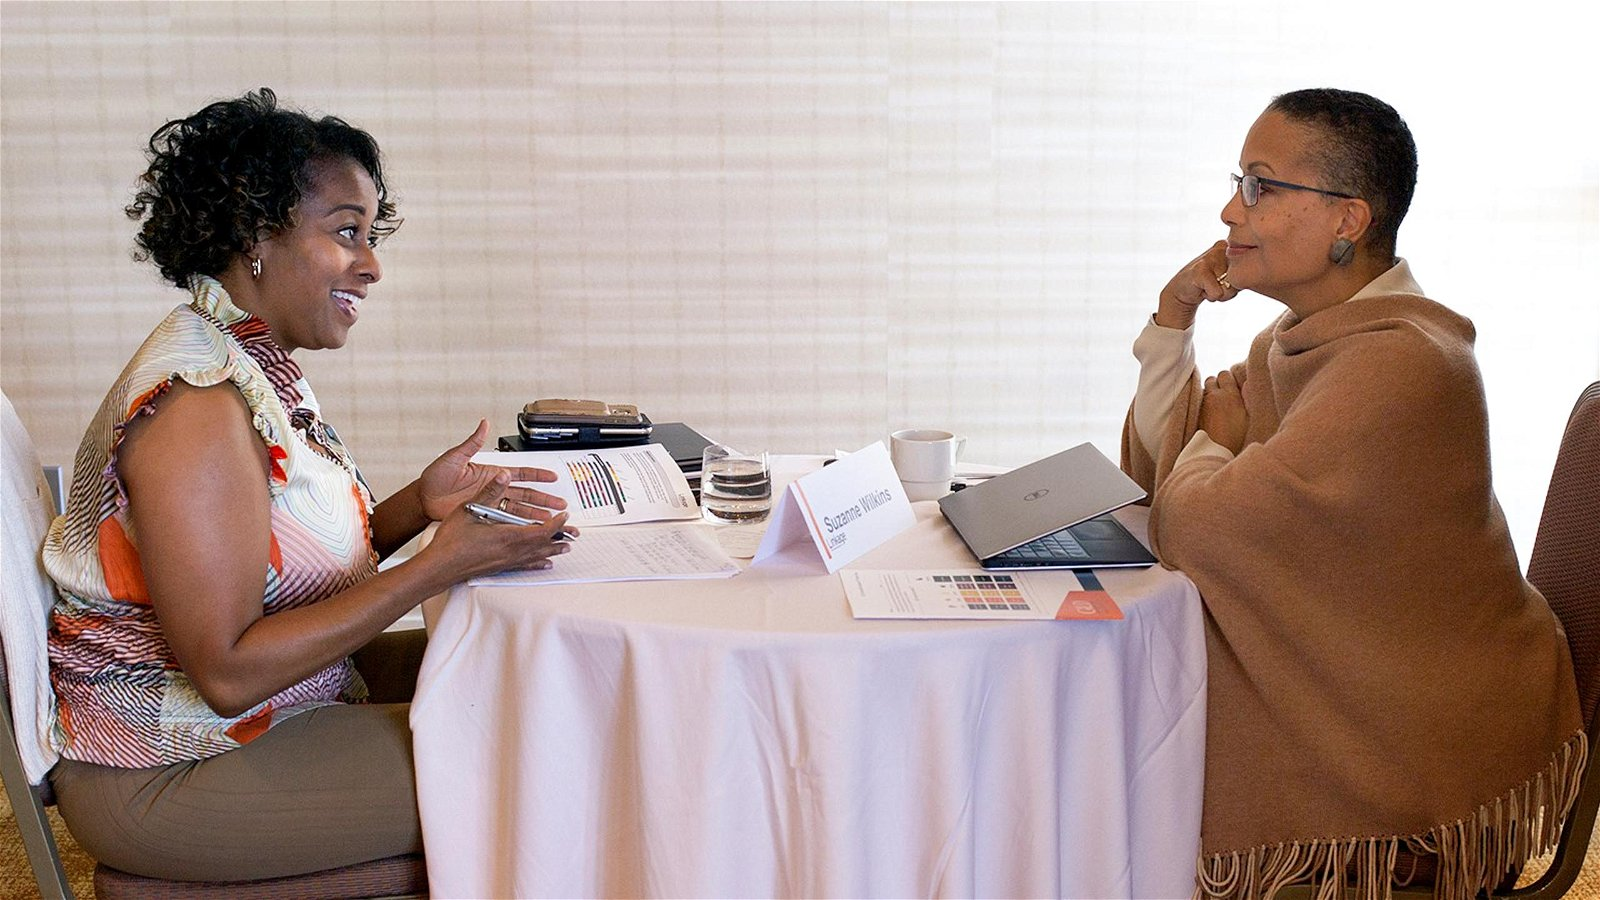 Two women have discussion over small table